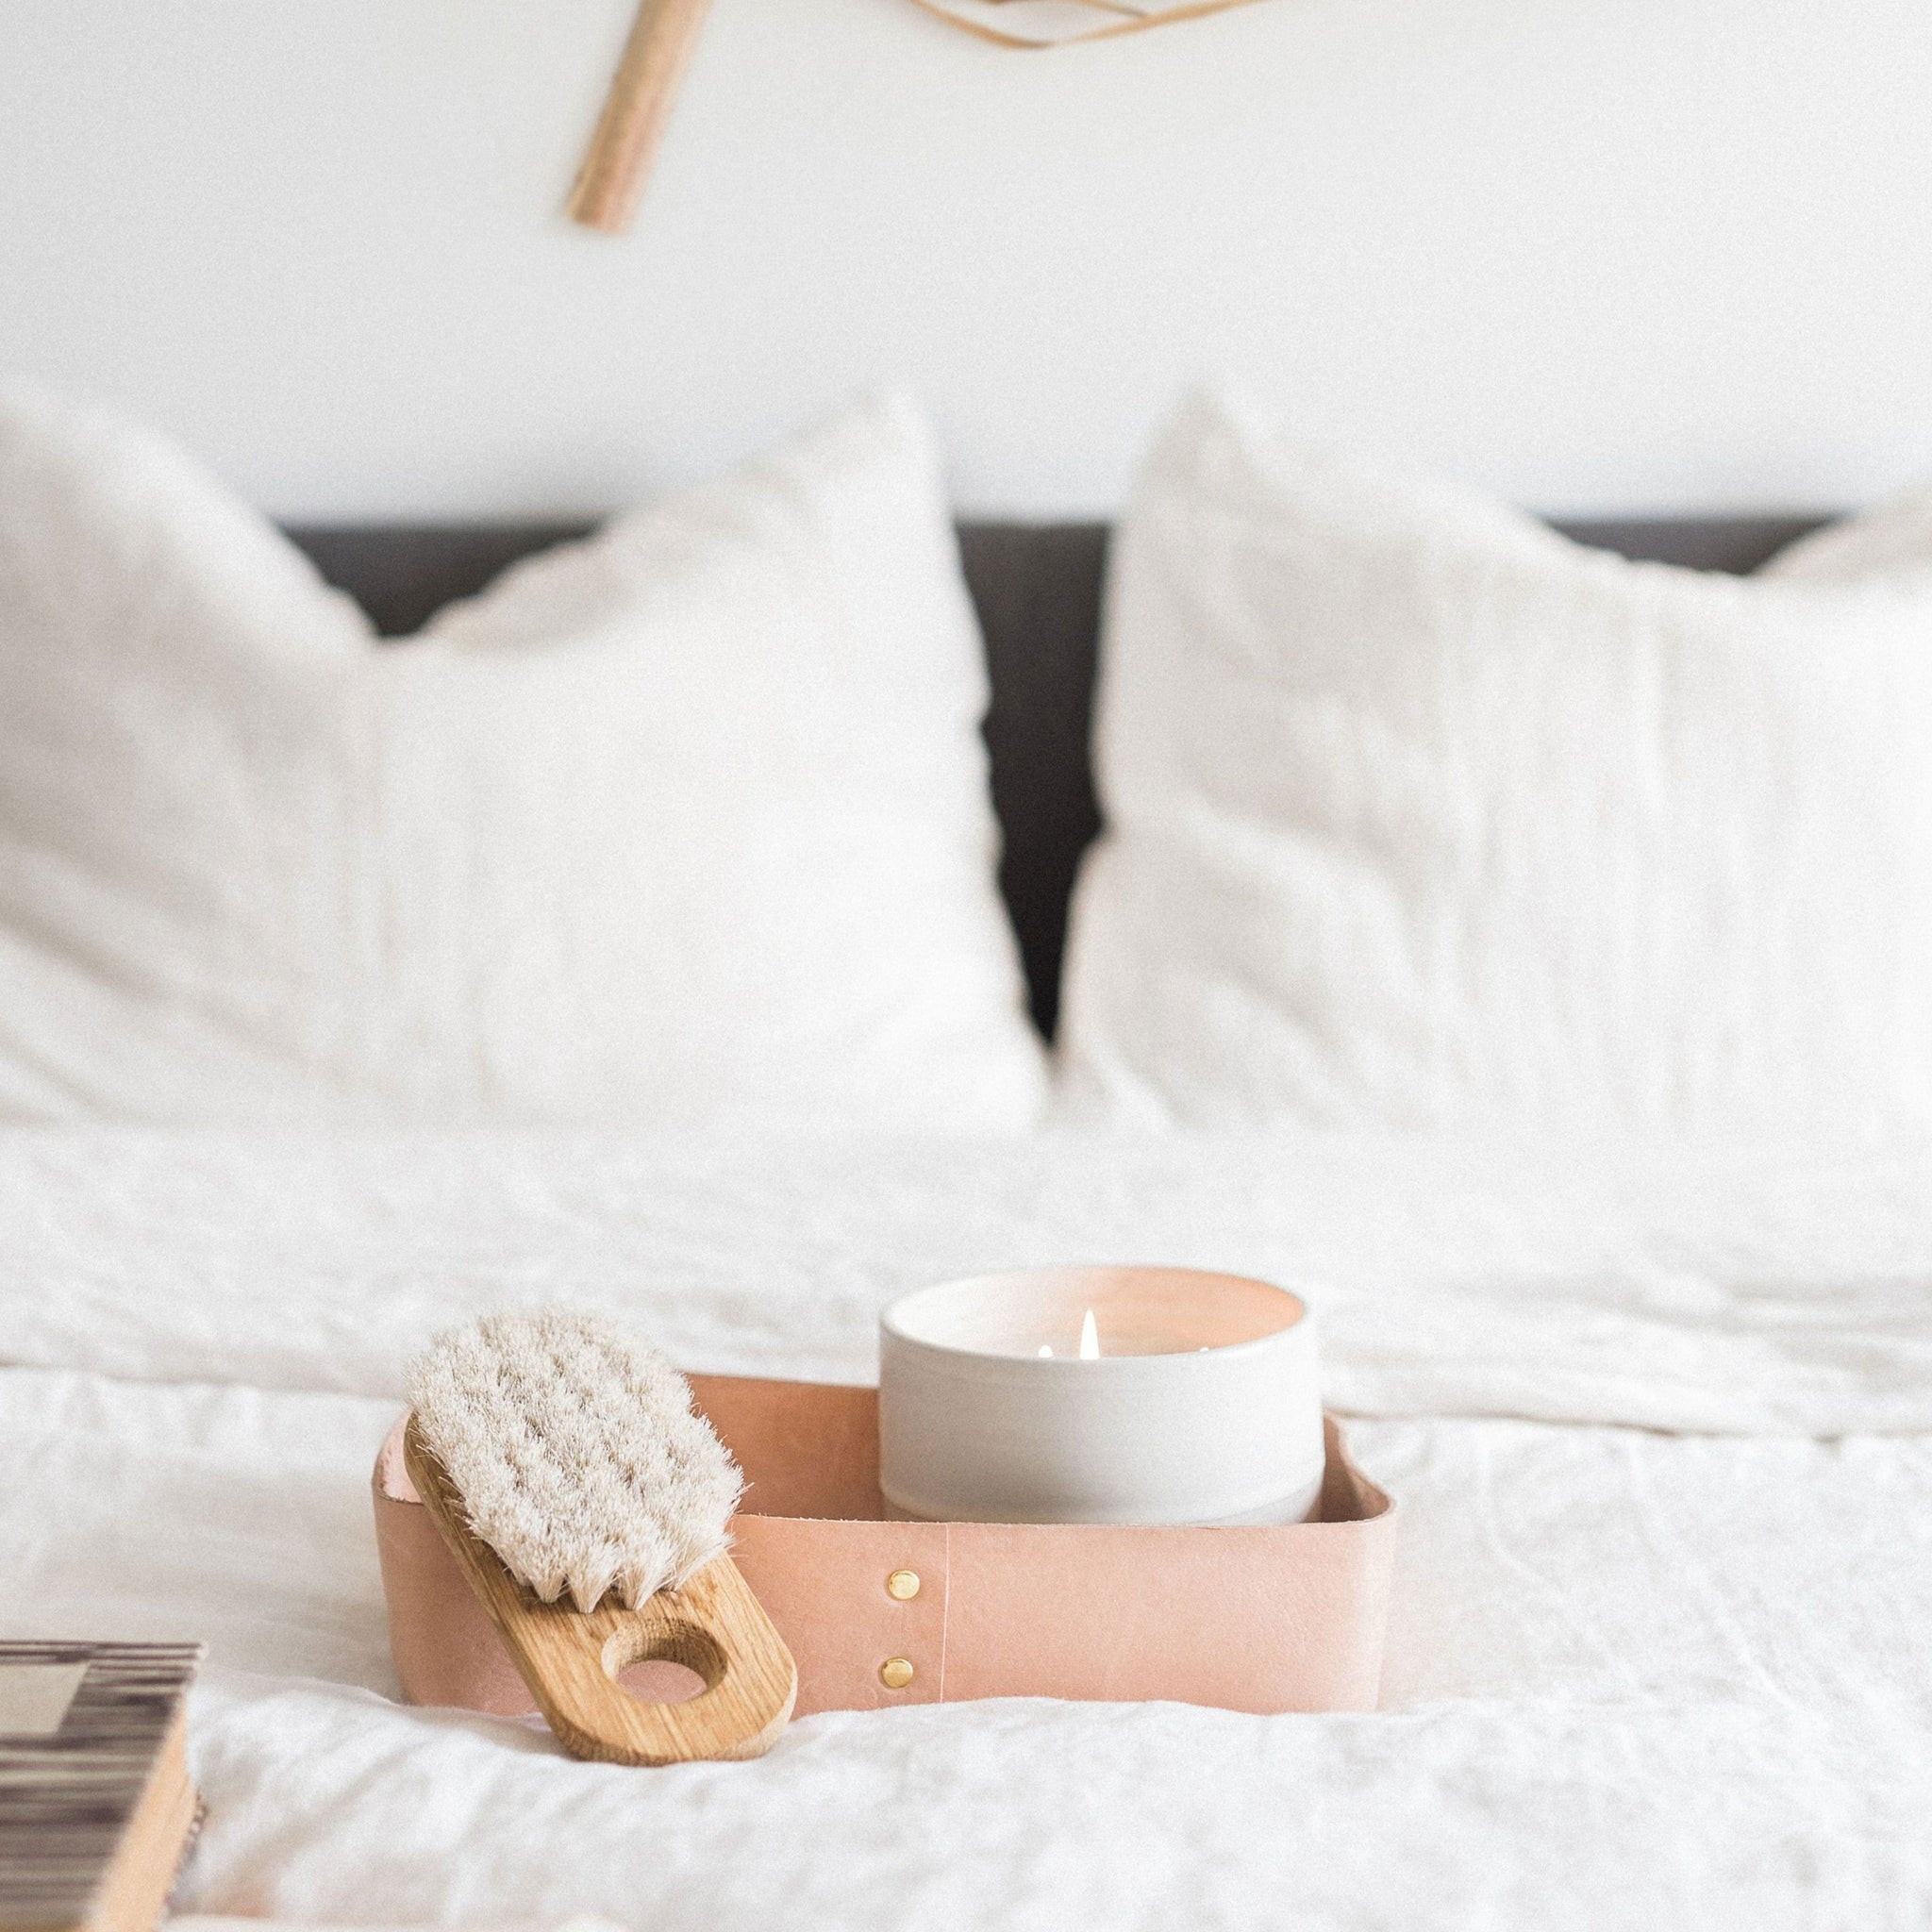 A leather tray holding a large white candle a wooden brush on a bed with white bedding.